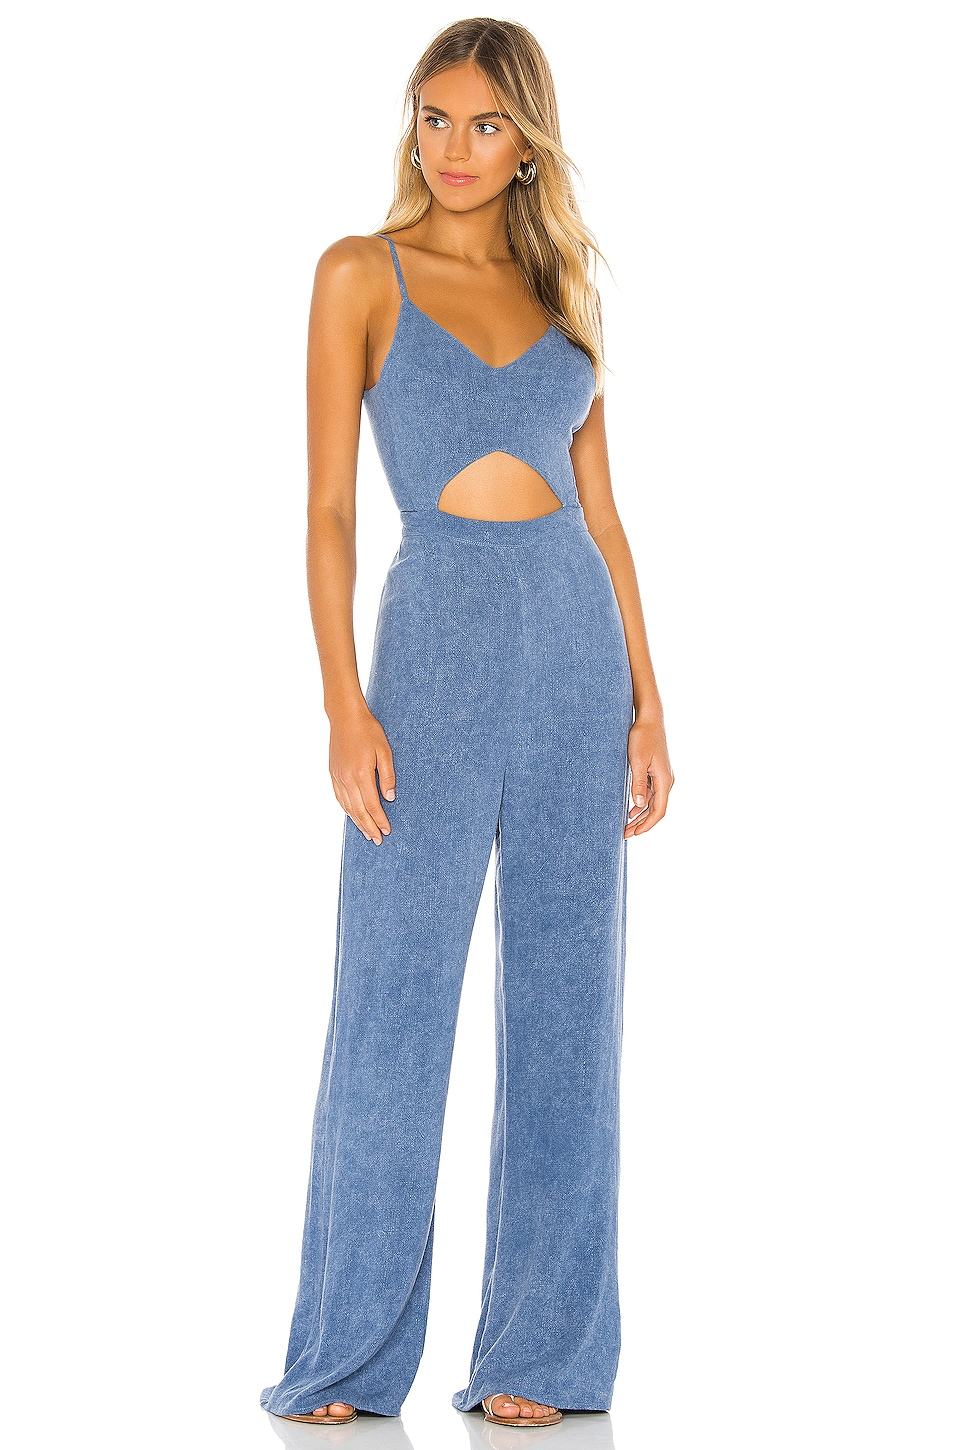 Indah Piper Jumpsuit in Chambray Stonewash